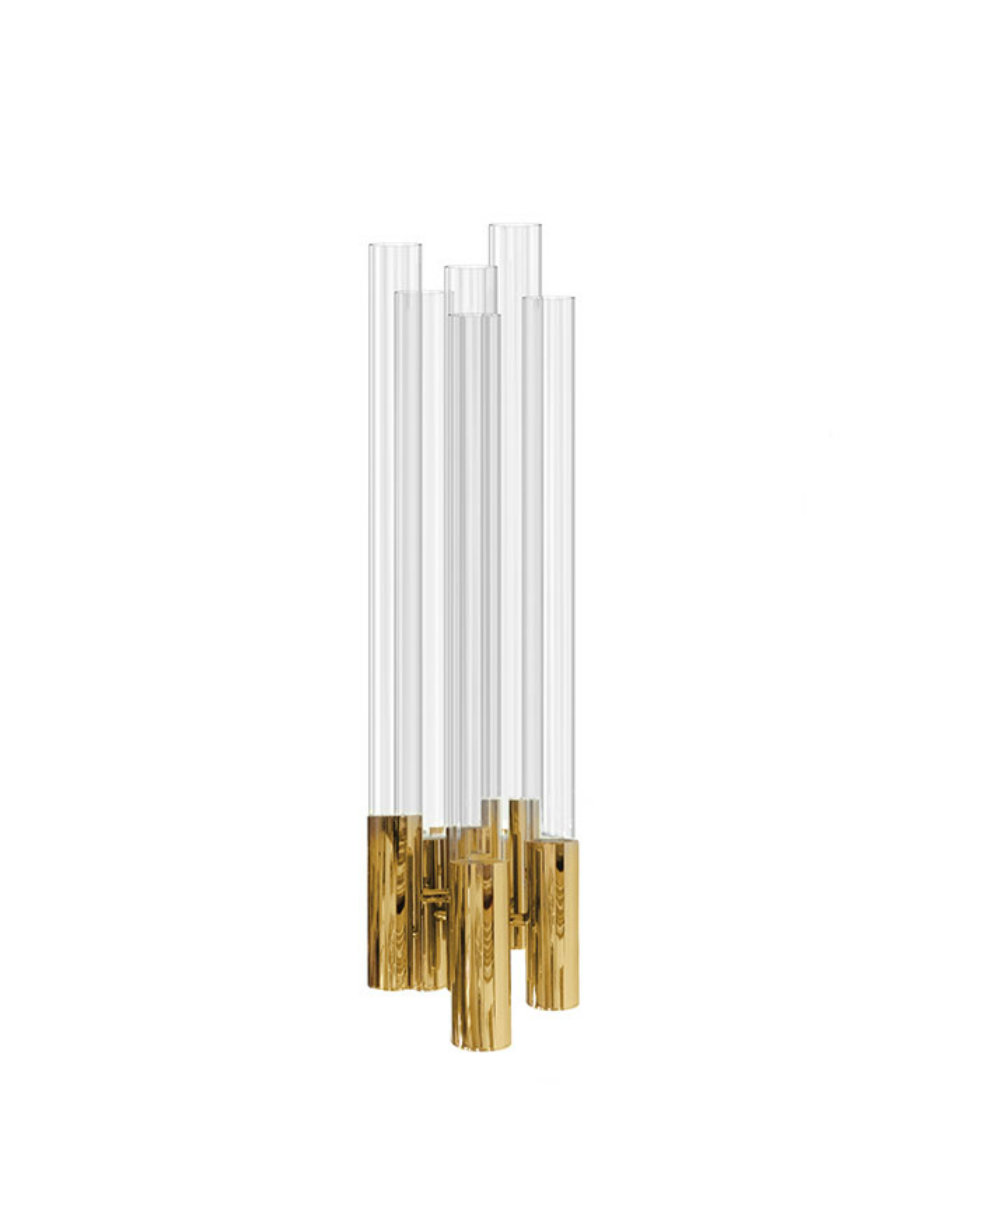 Lighting Inspiration: Meet The Burj Collection